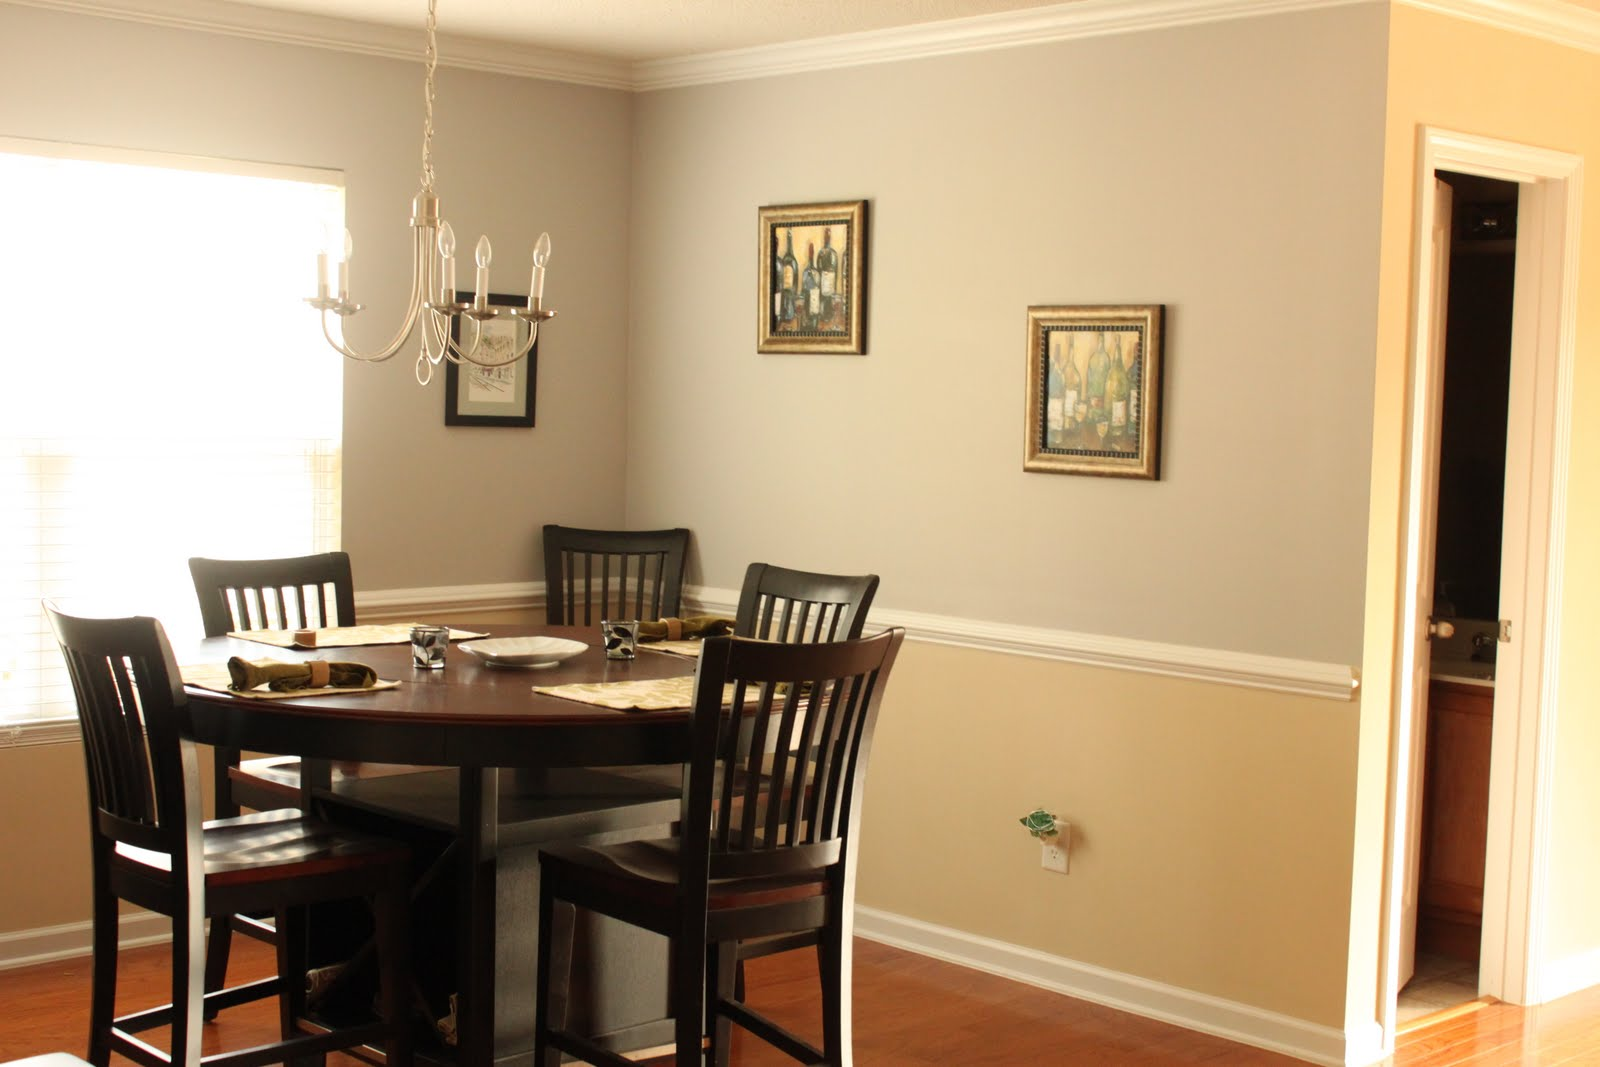 paint colors for dining room walls photo - 1